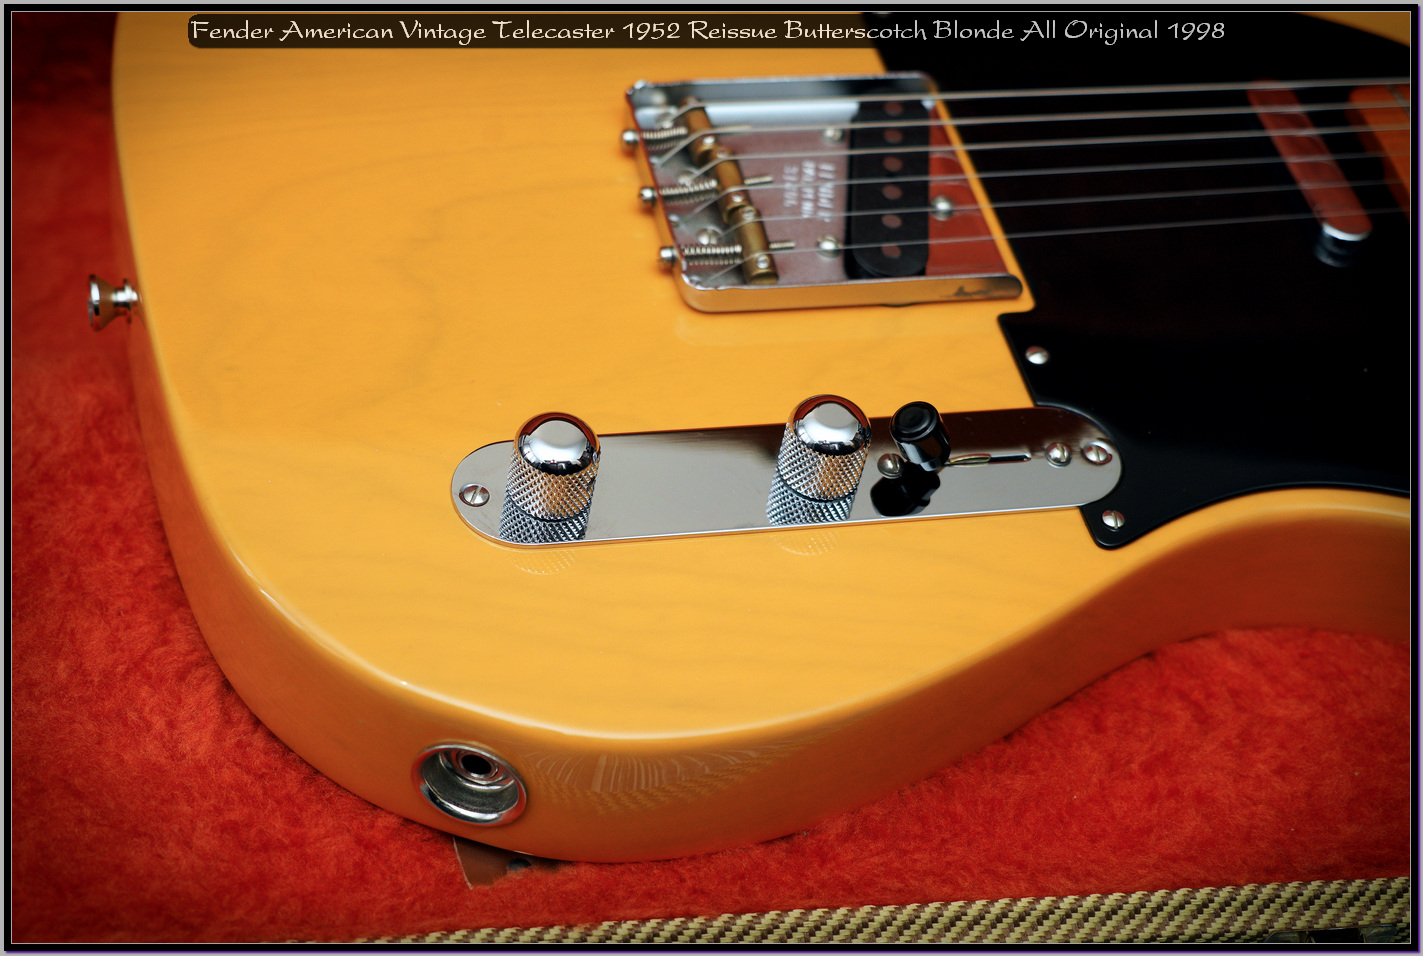 Fender American Vintage Telecaster 1952 Reissue Butterscotch Blonde All Original 1998 18_x1440.jpg